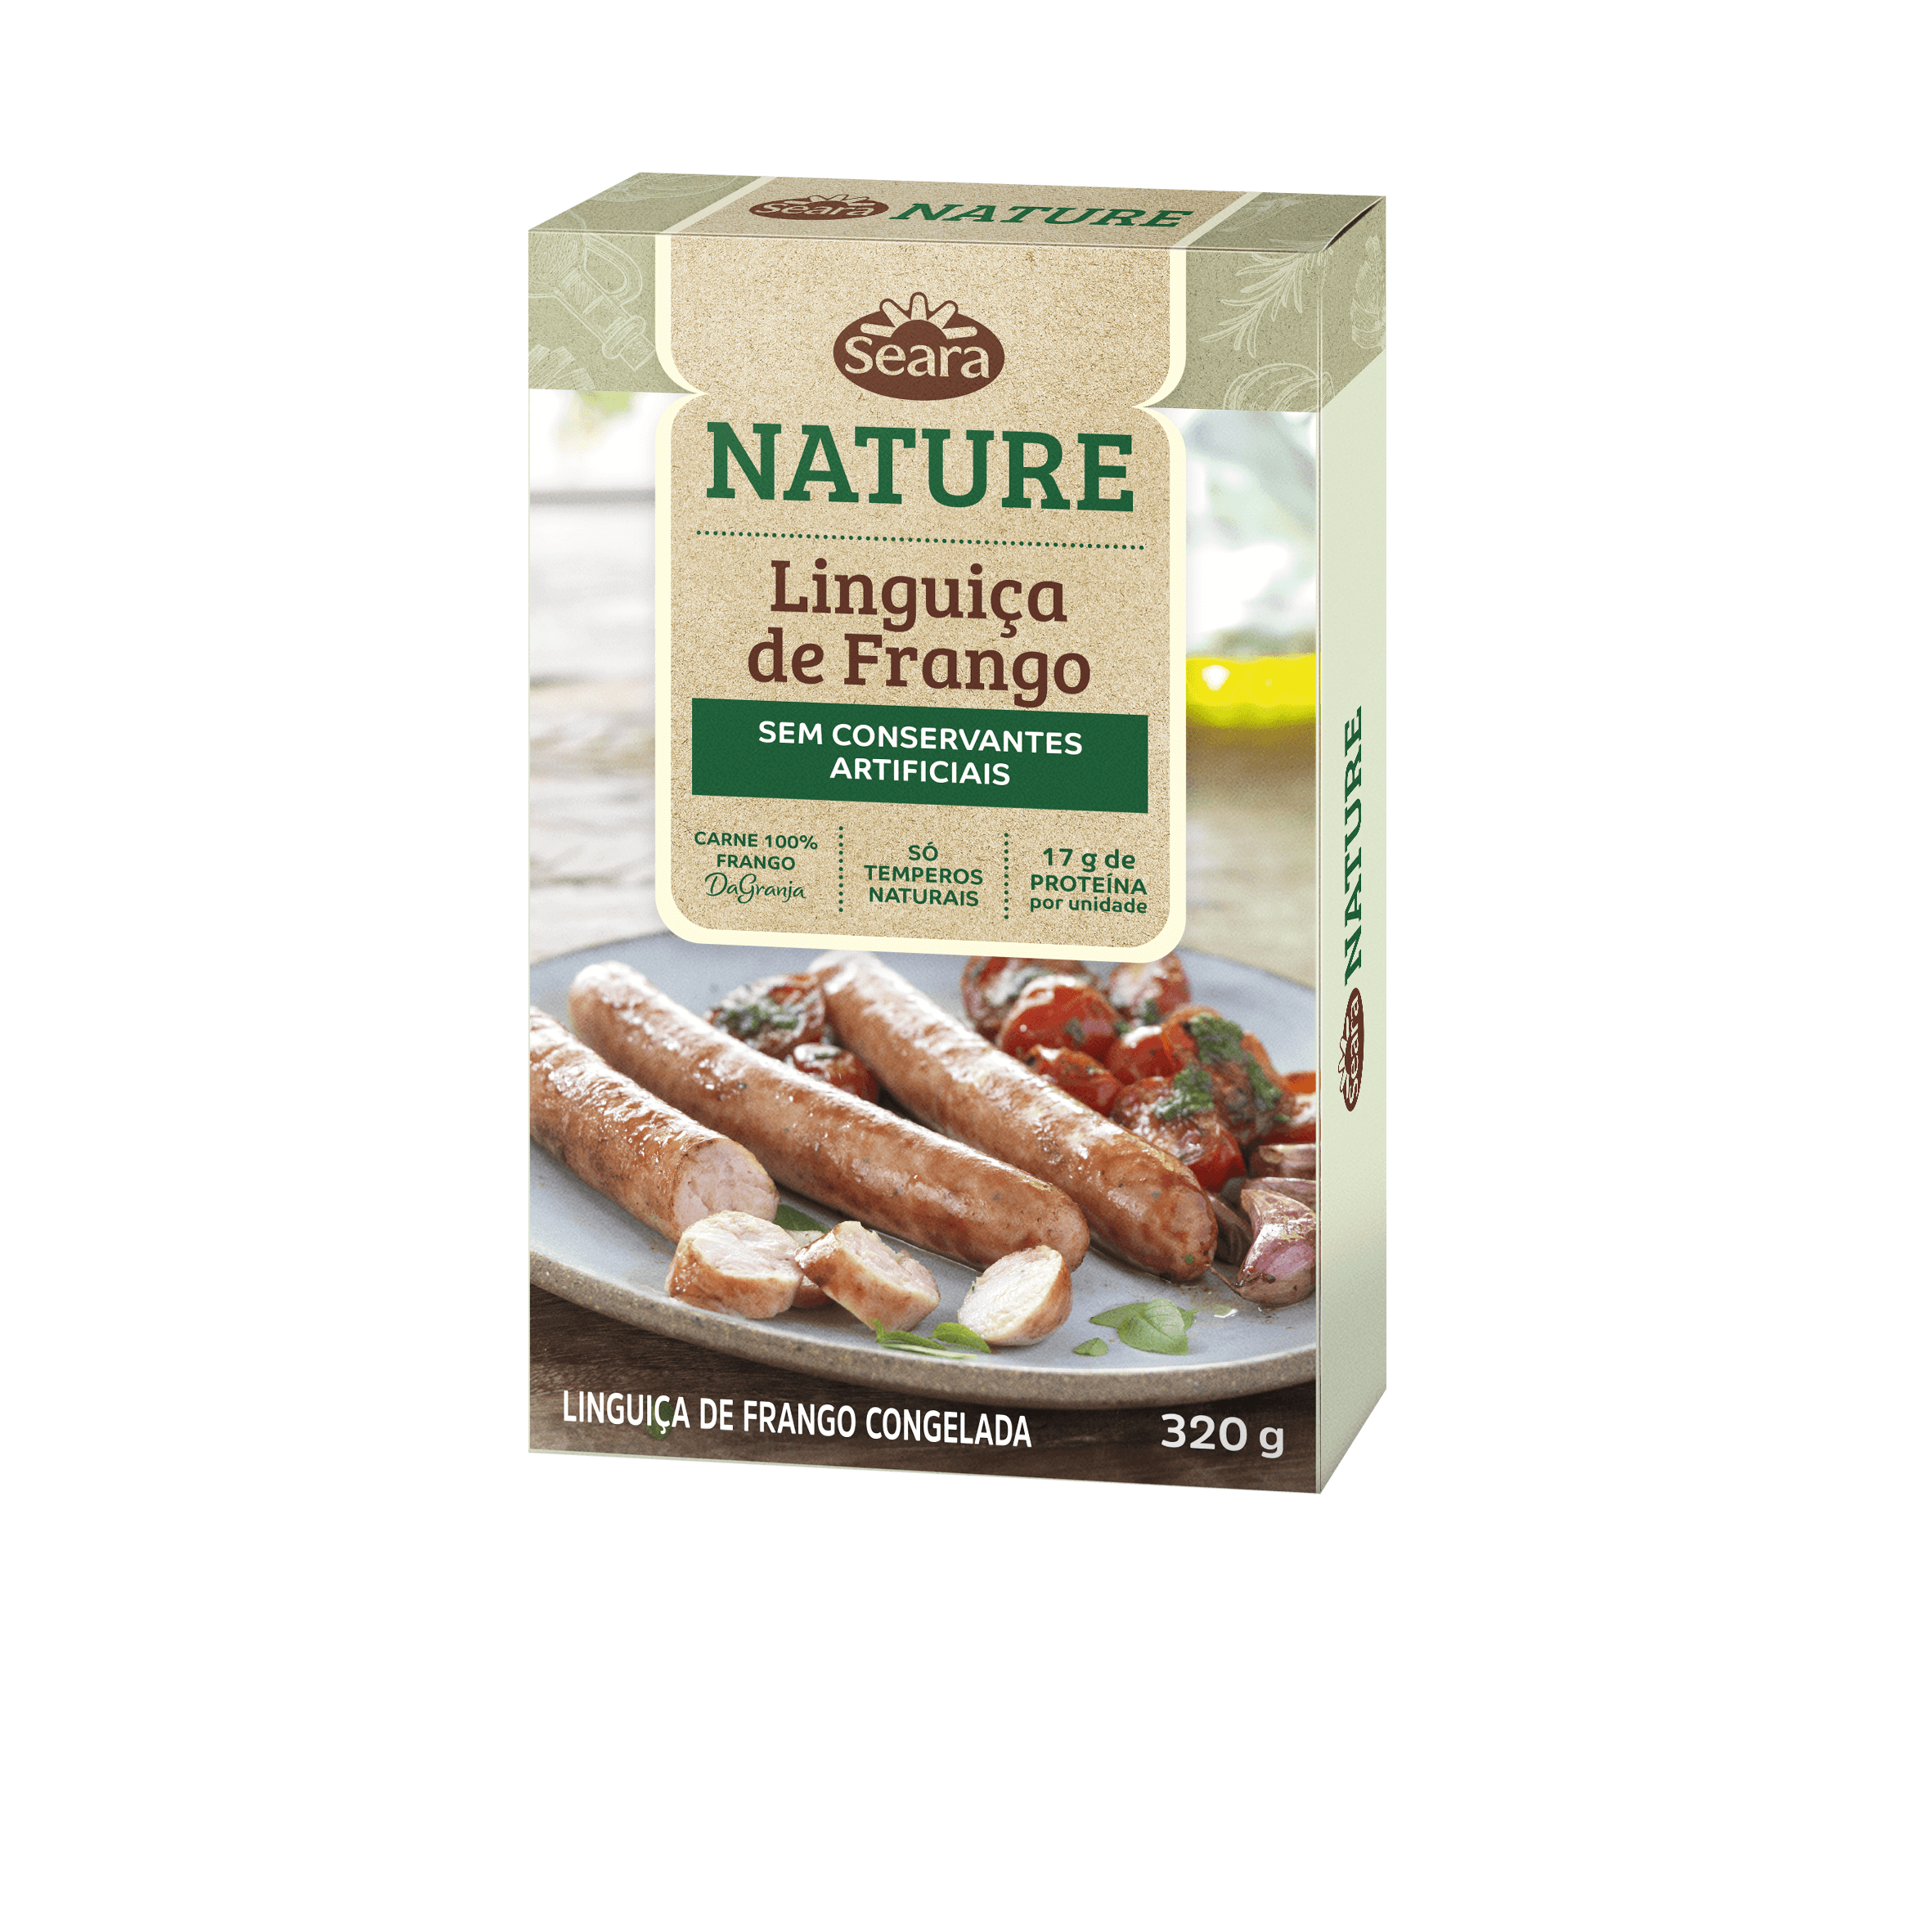 7894904094691 - LING FRANGO SEARA NATURE 320G